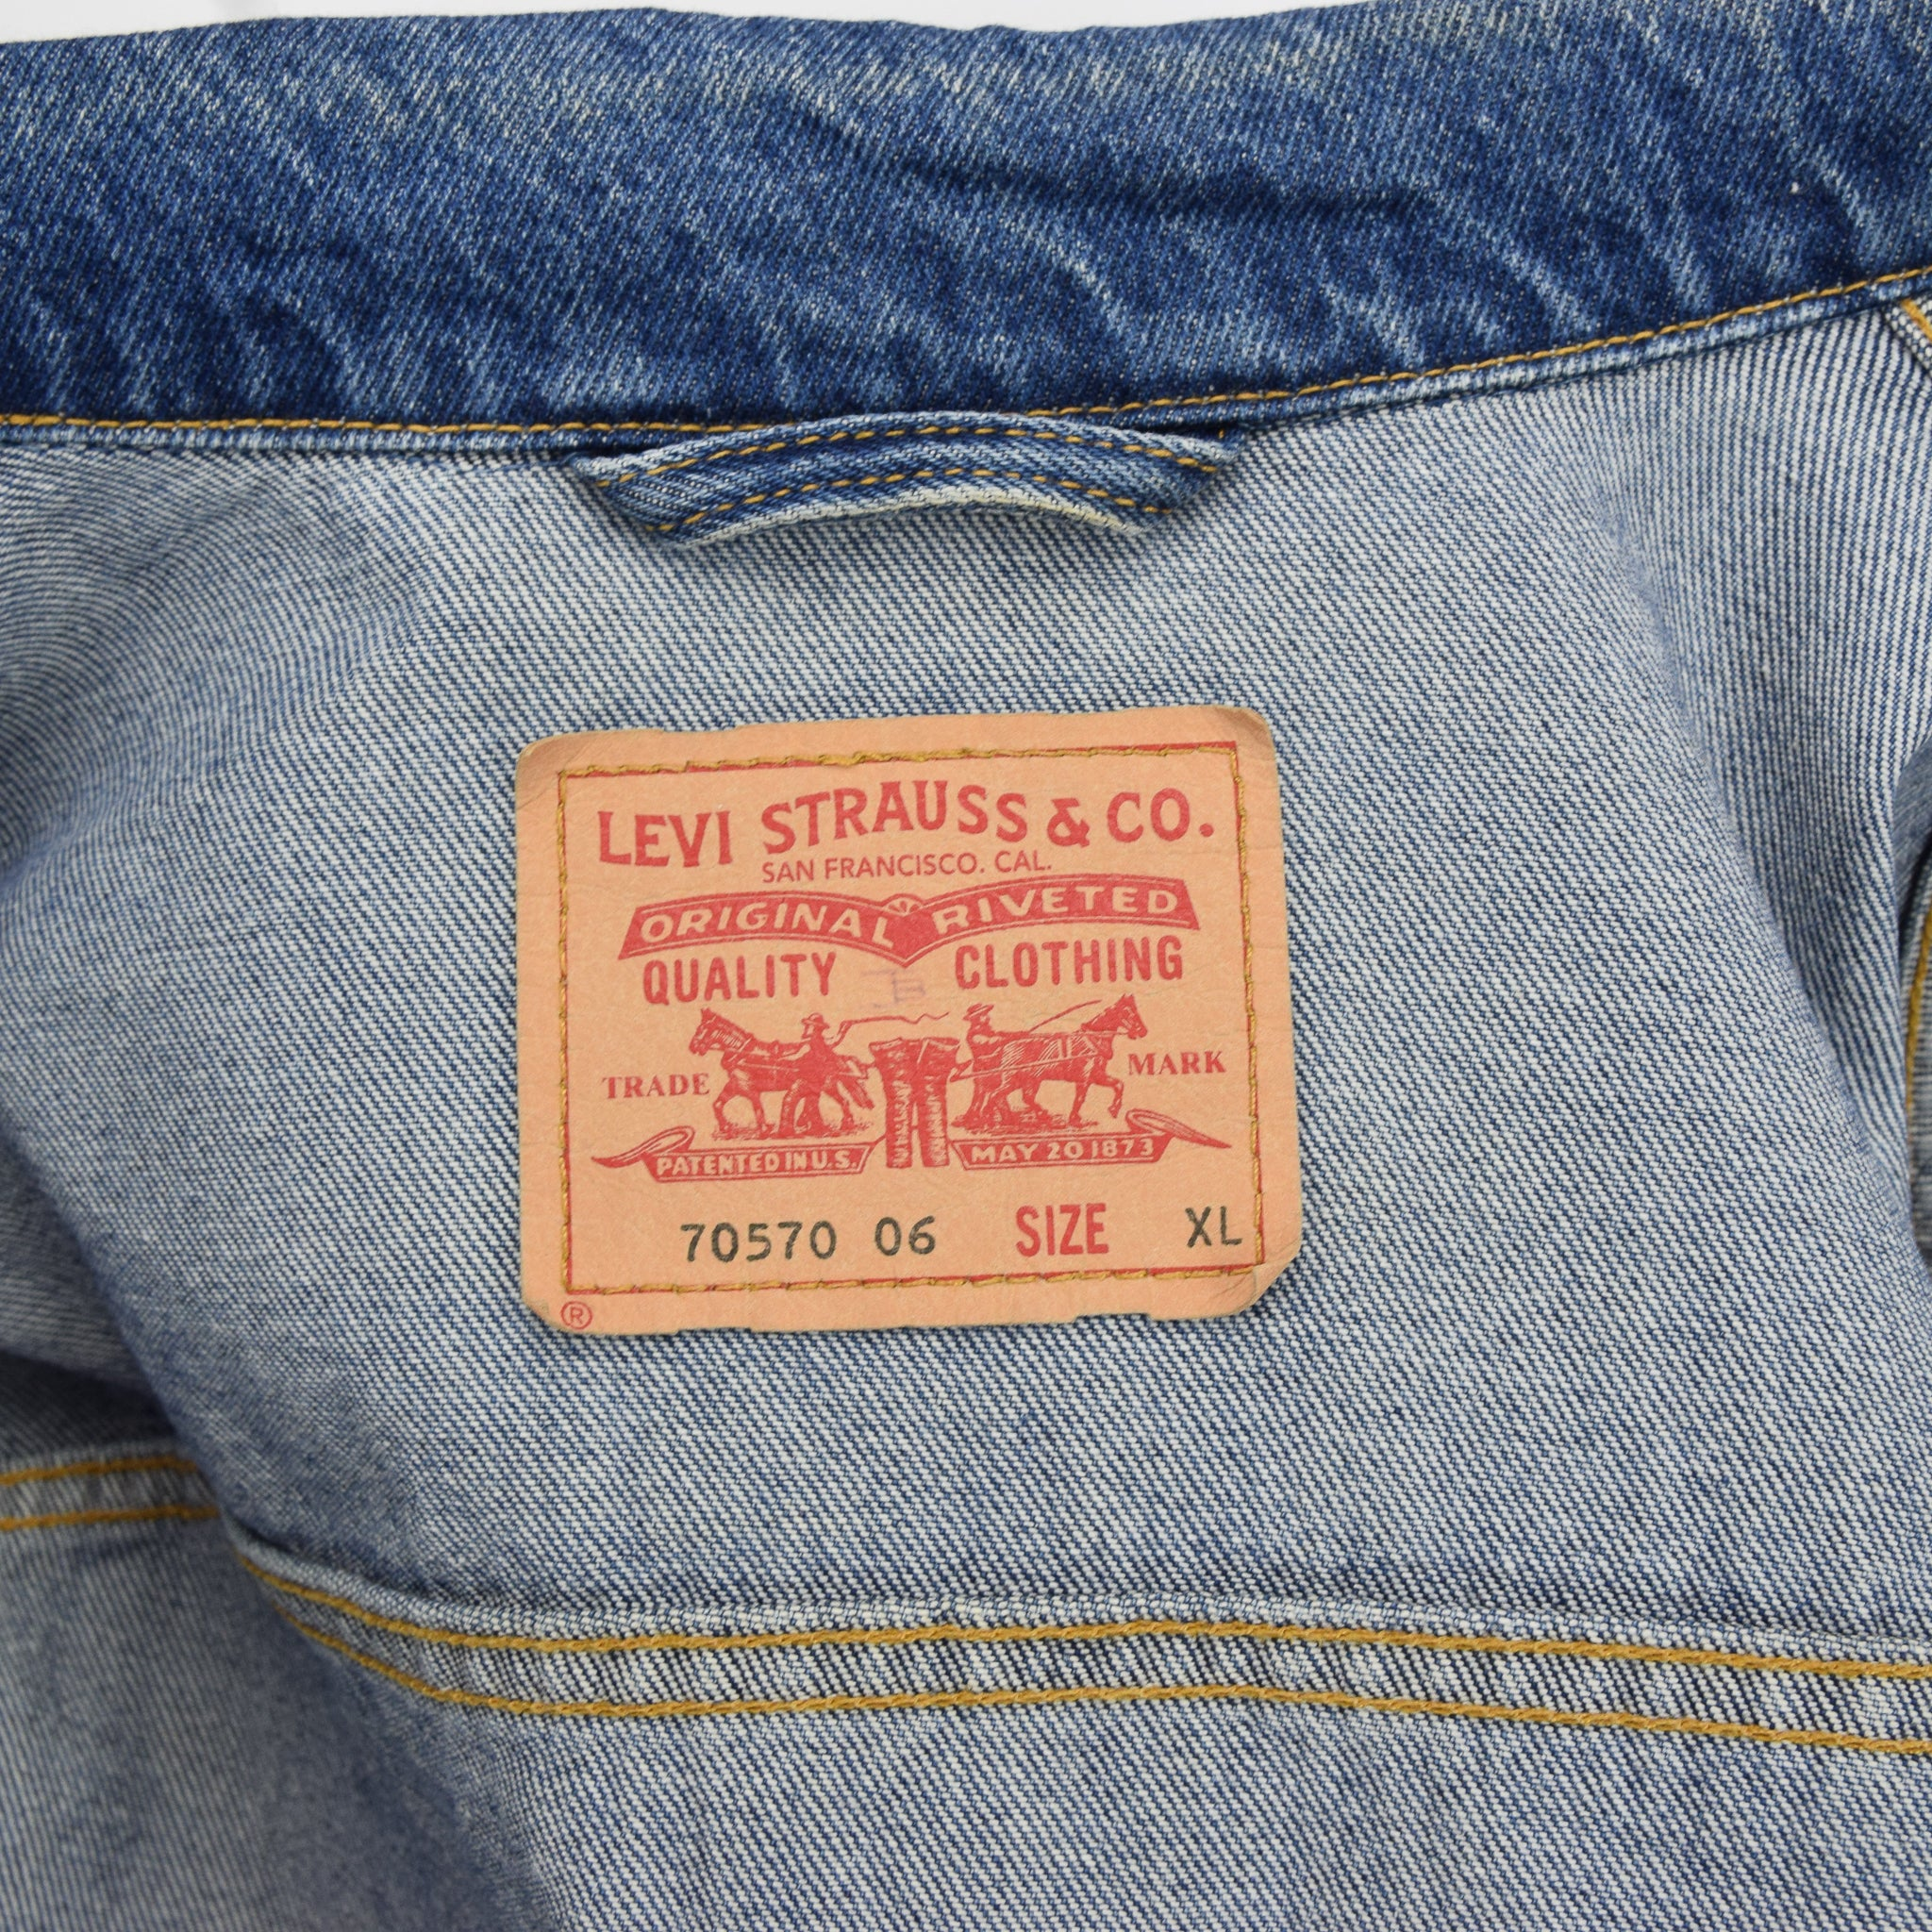 Vintage Levi Red Tab 70570 06 Washed Blue Denim Trucker Western Jacket XL label